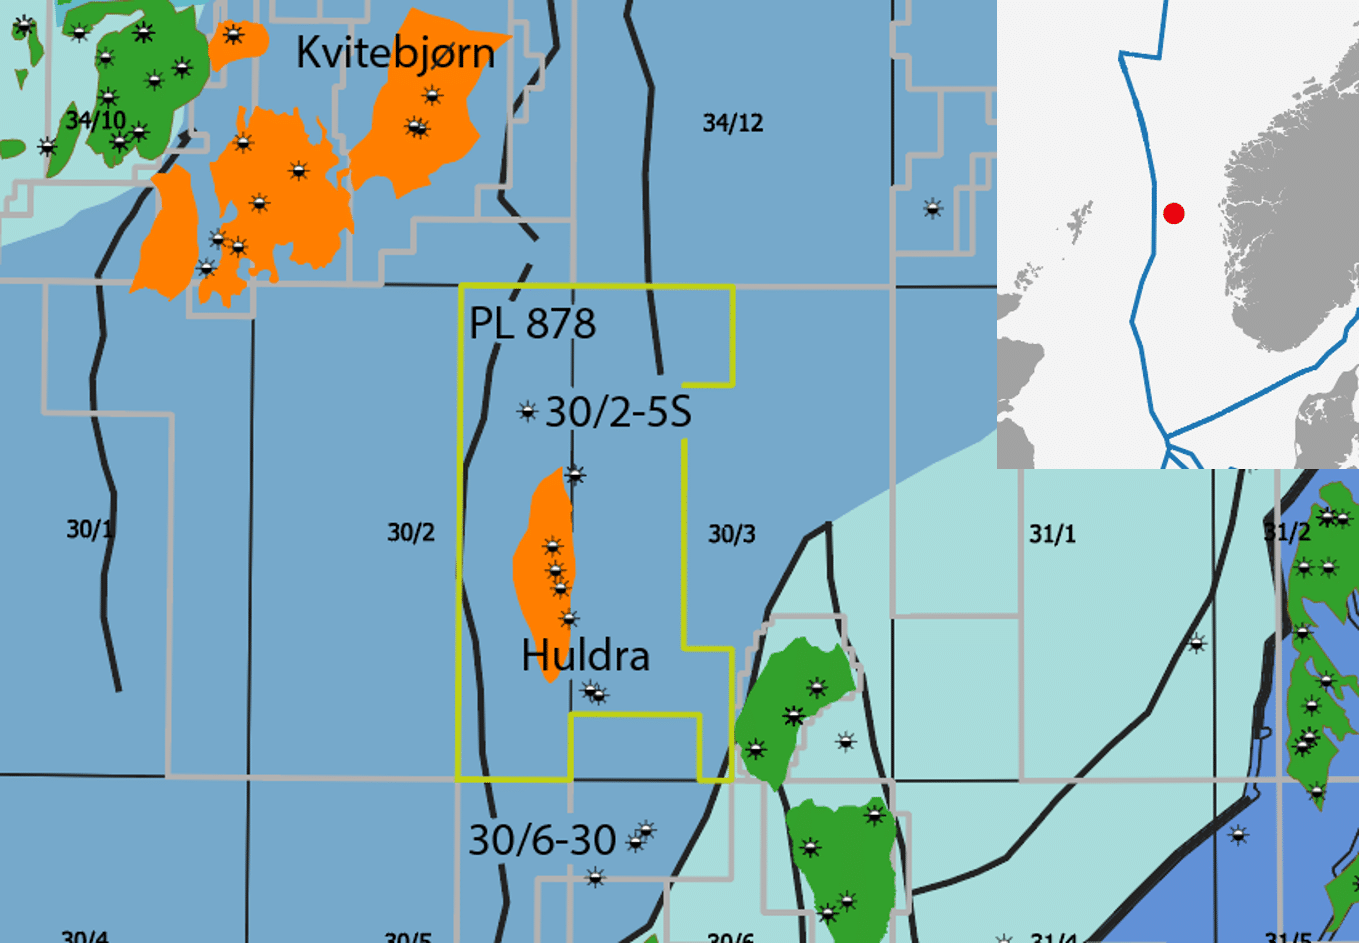 Brent gas discovery for Equinor